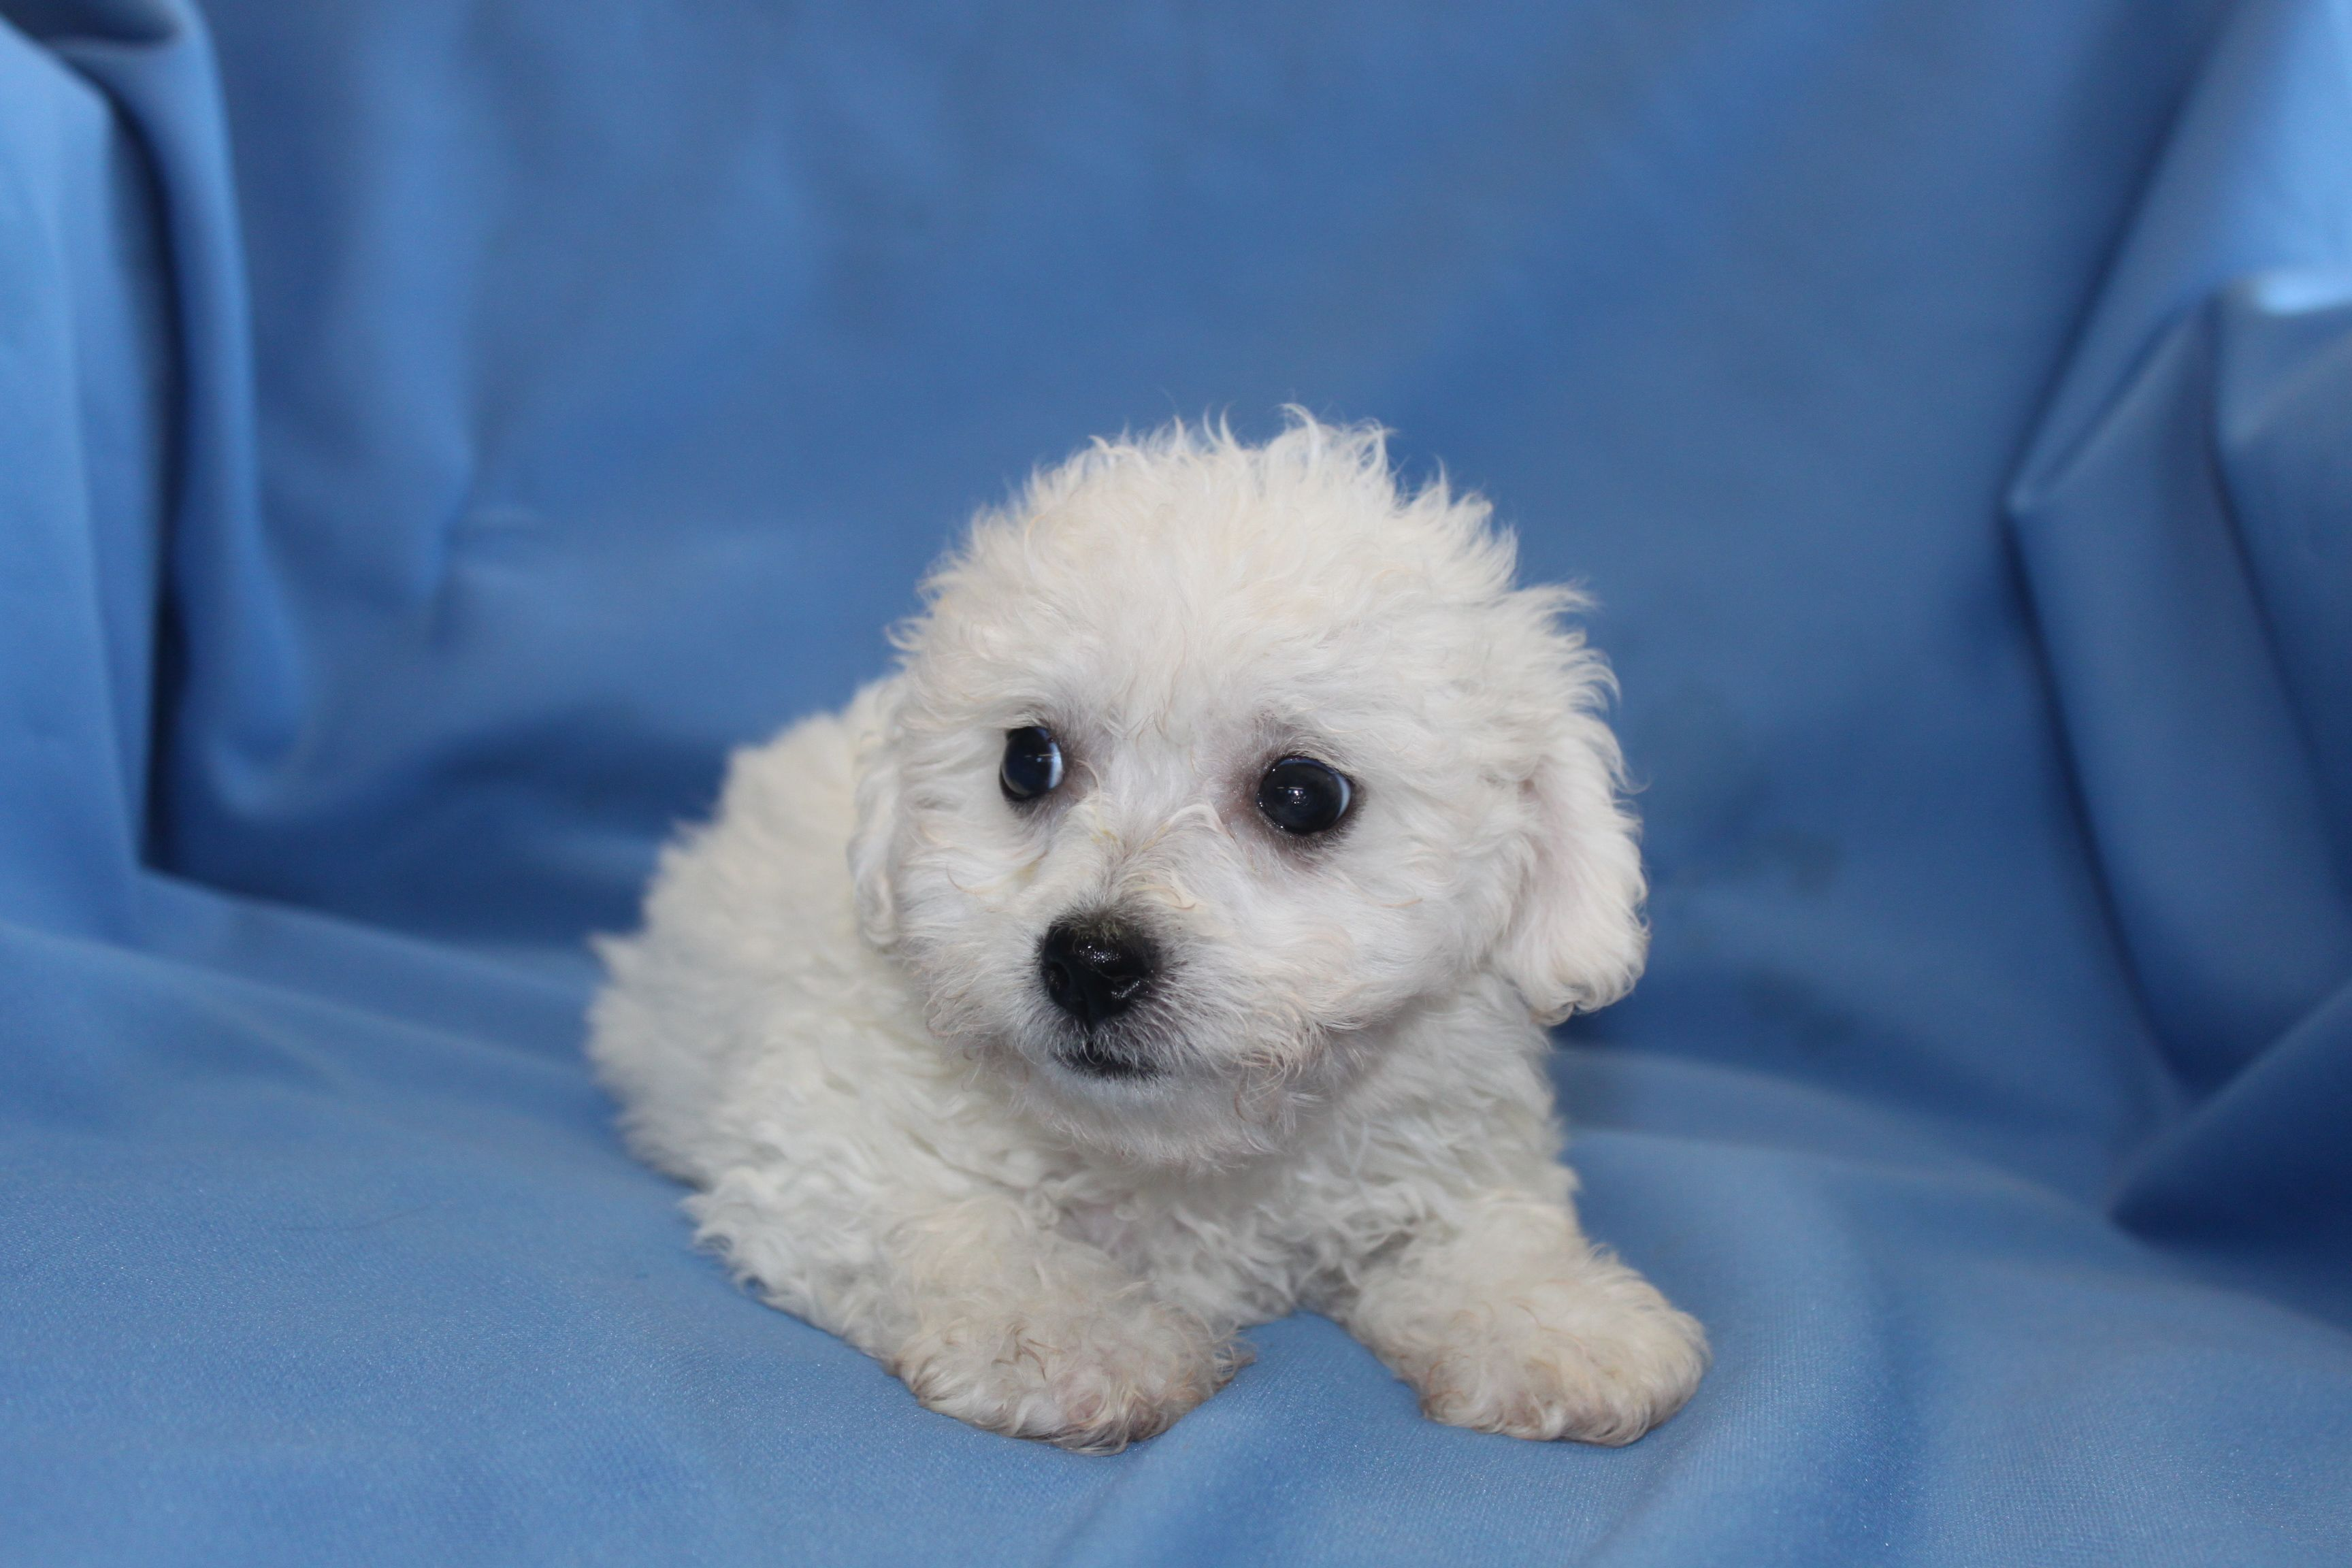 Bichon Frise puppies for sale at